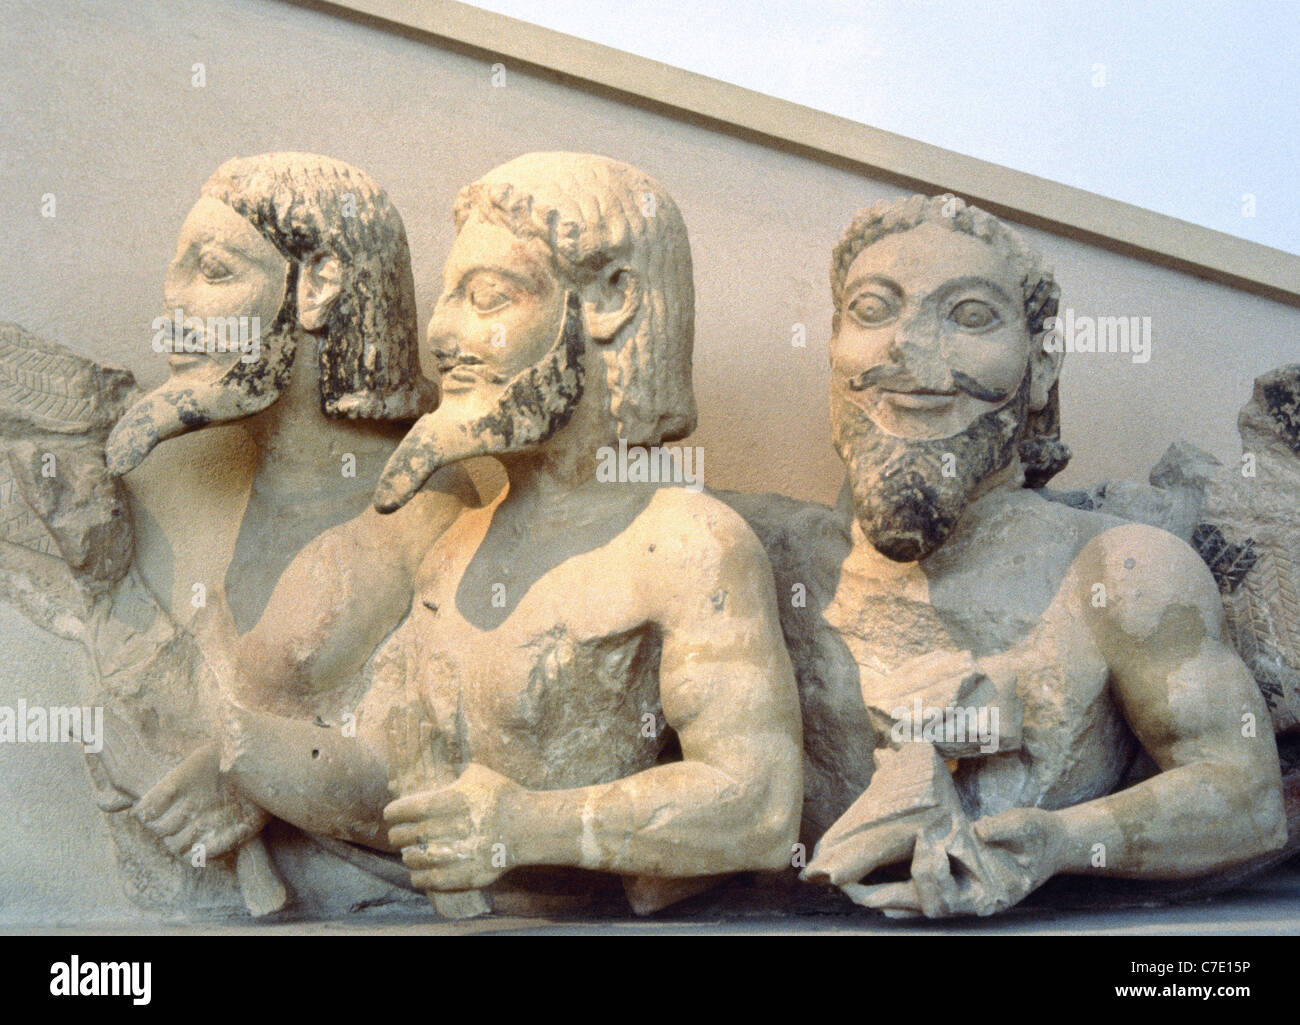 Triple-bodied Monster, know as Bluebeard. Pediment of the Hekatompedon of the Acropolis. 6th century BC. - Stock Image